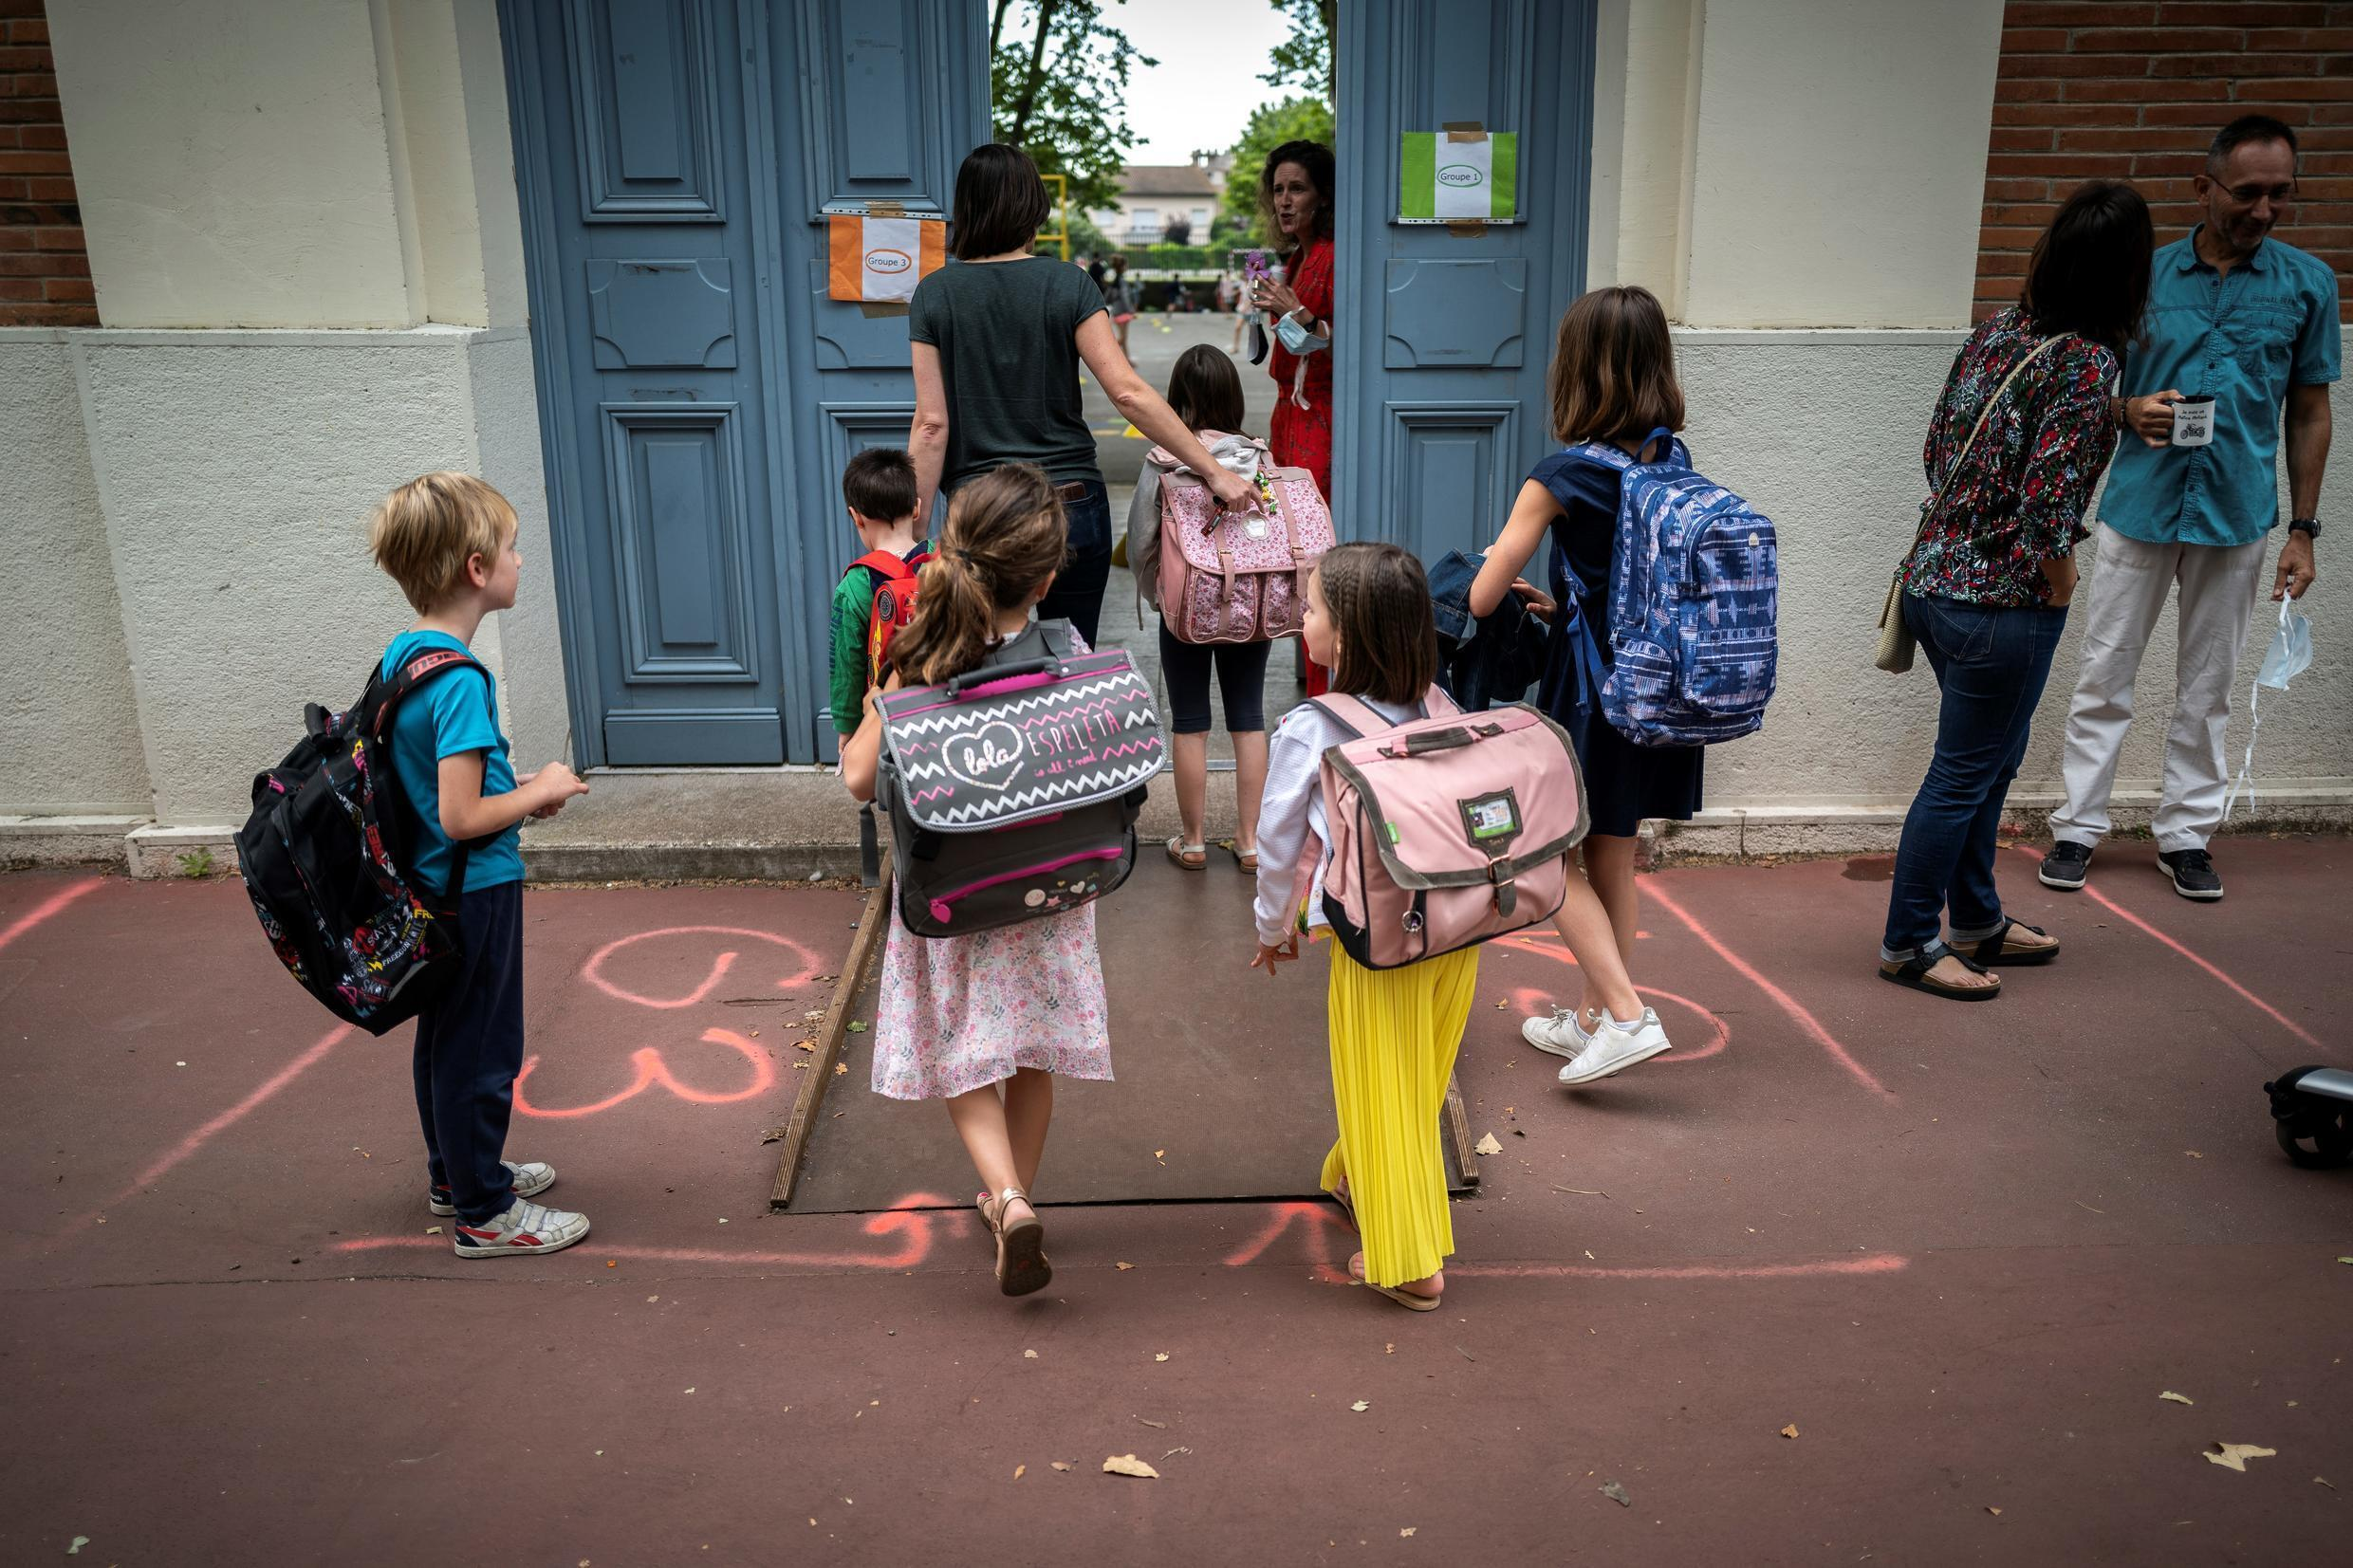 Children will only have two weeks at school before the summer holidays